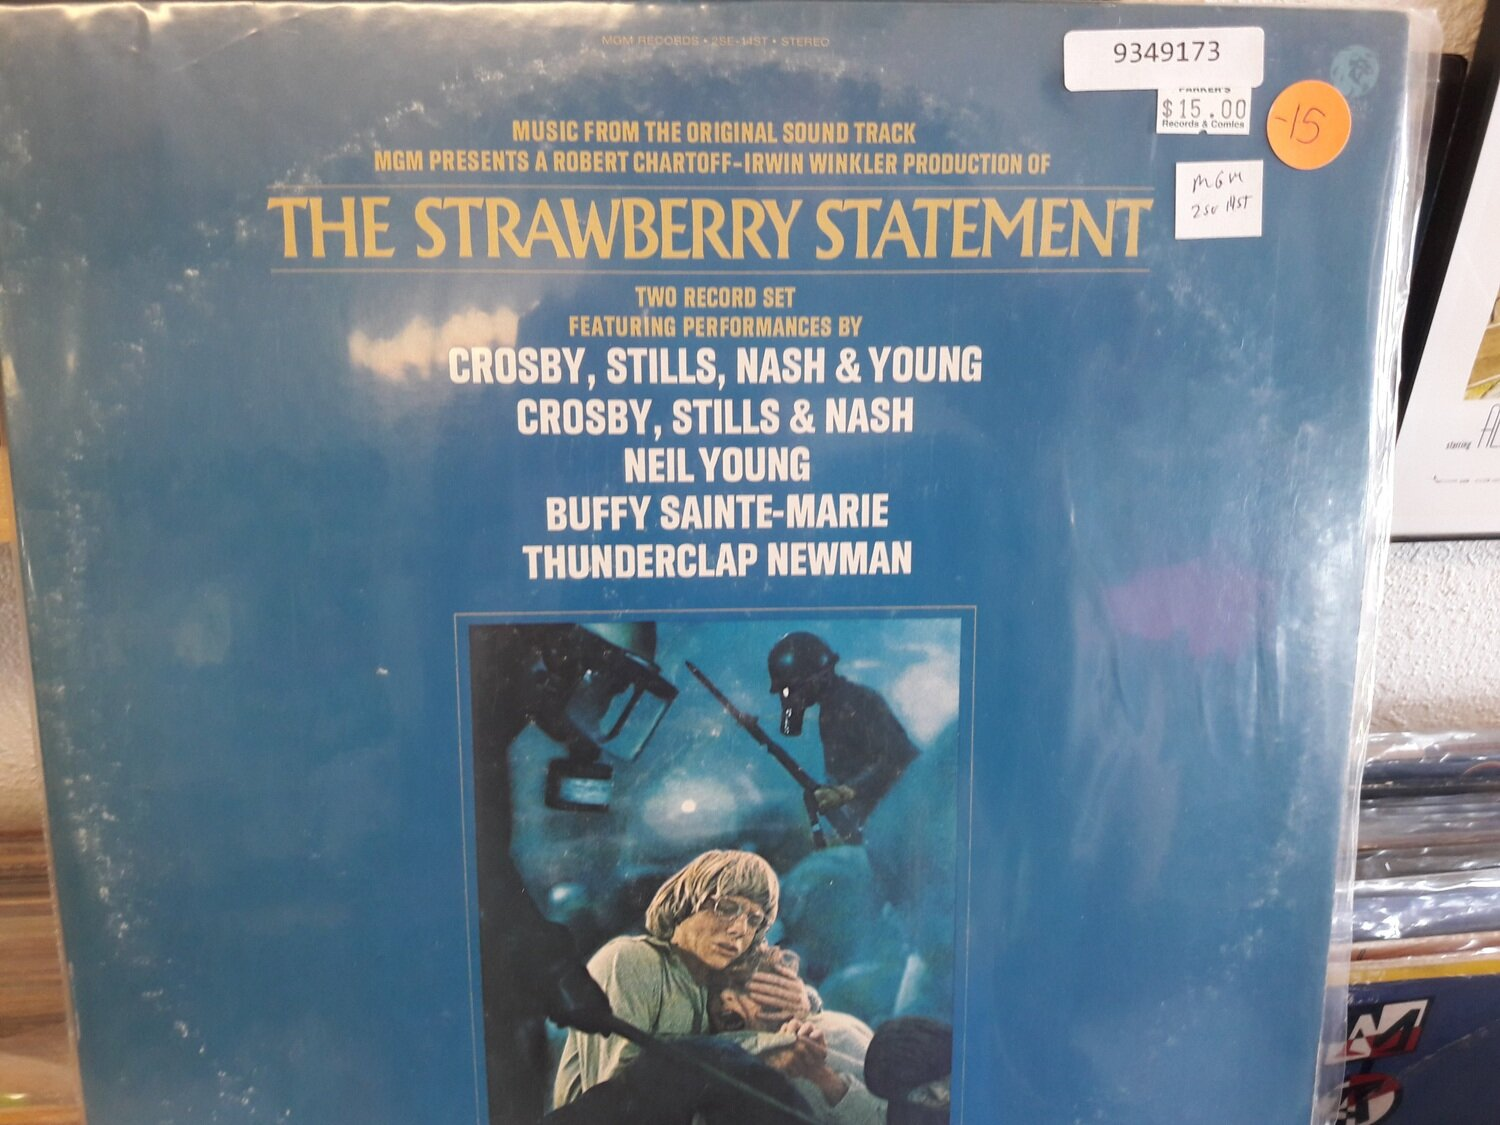 soundtrack of the strawberry statement